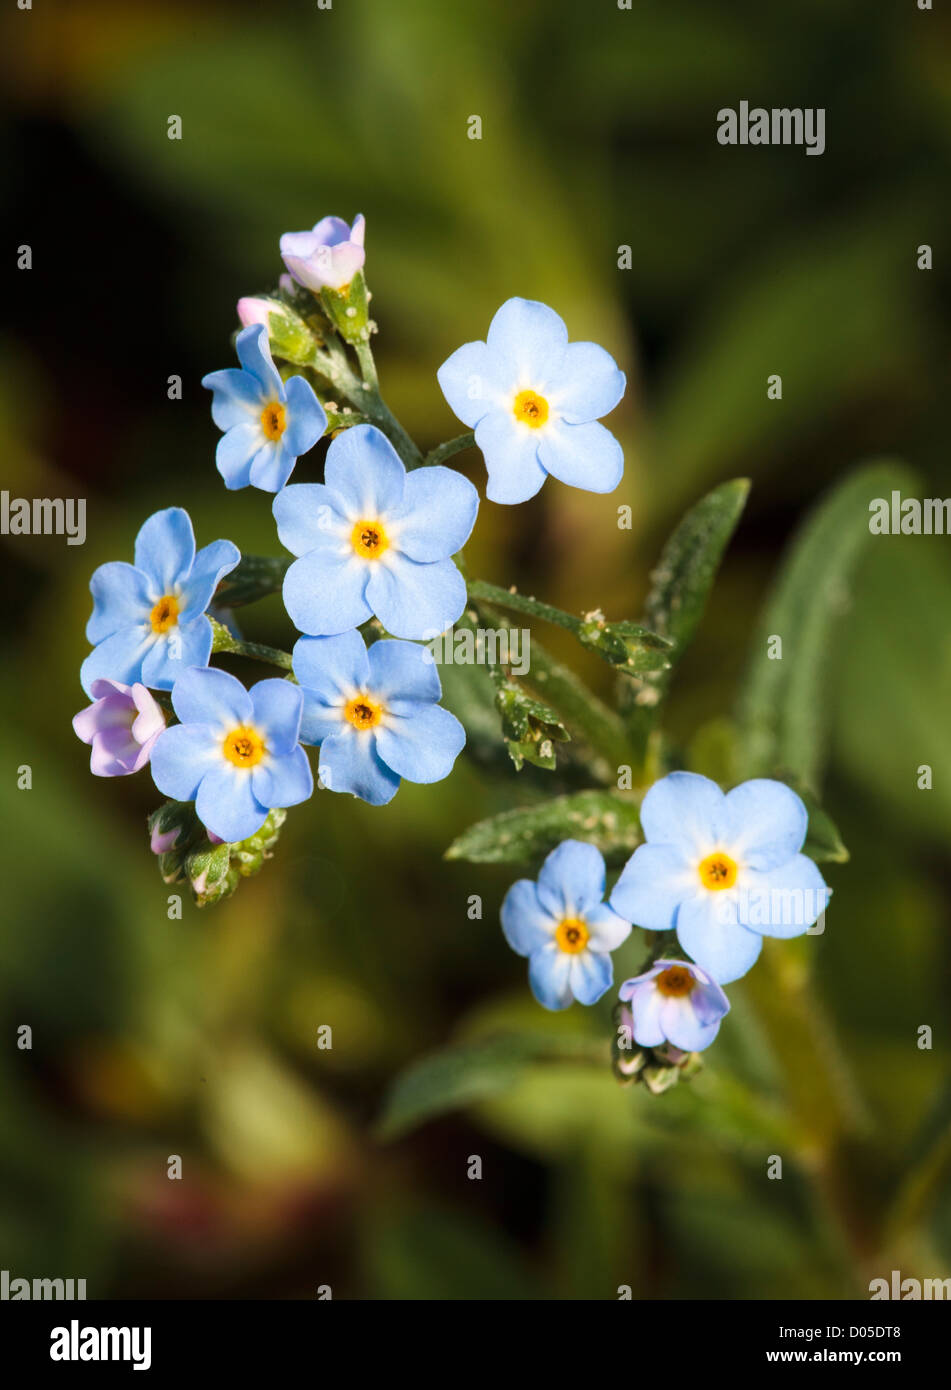 Myosotis scorpioides - Water Forget-me-not - plant in flower. Stock Photo